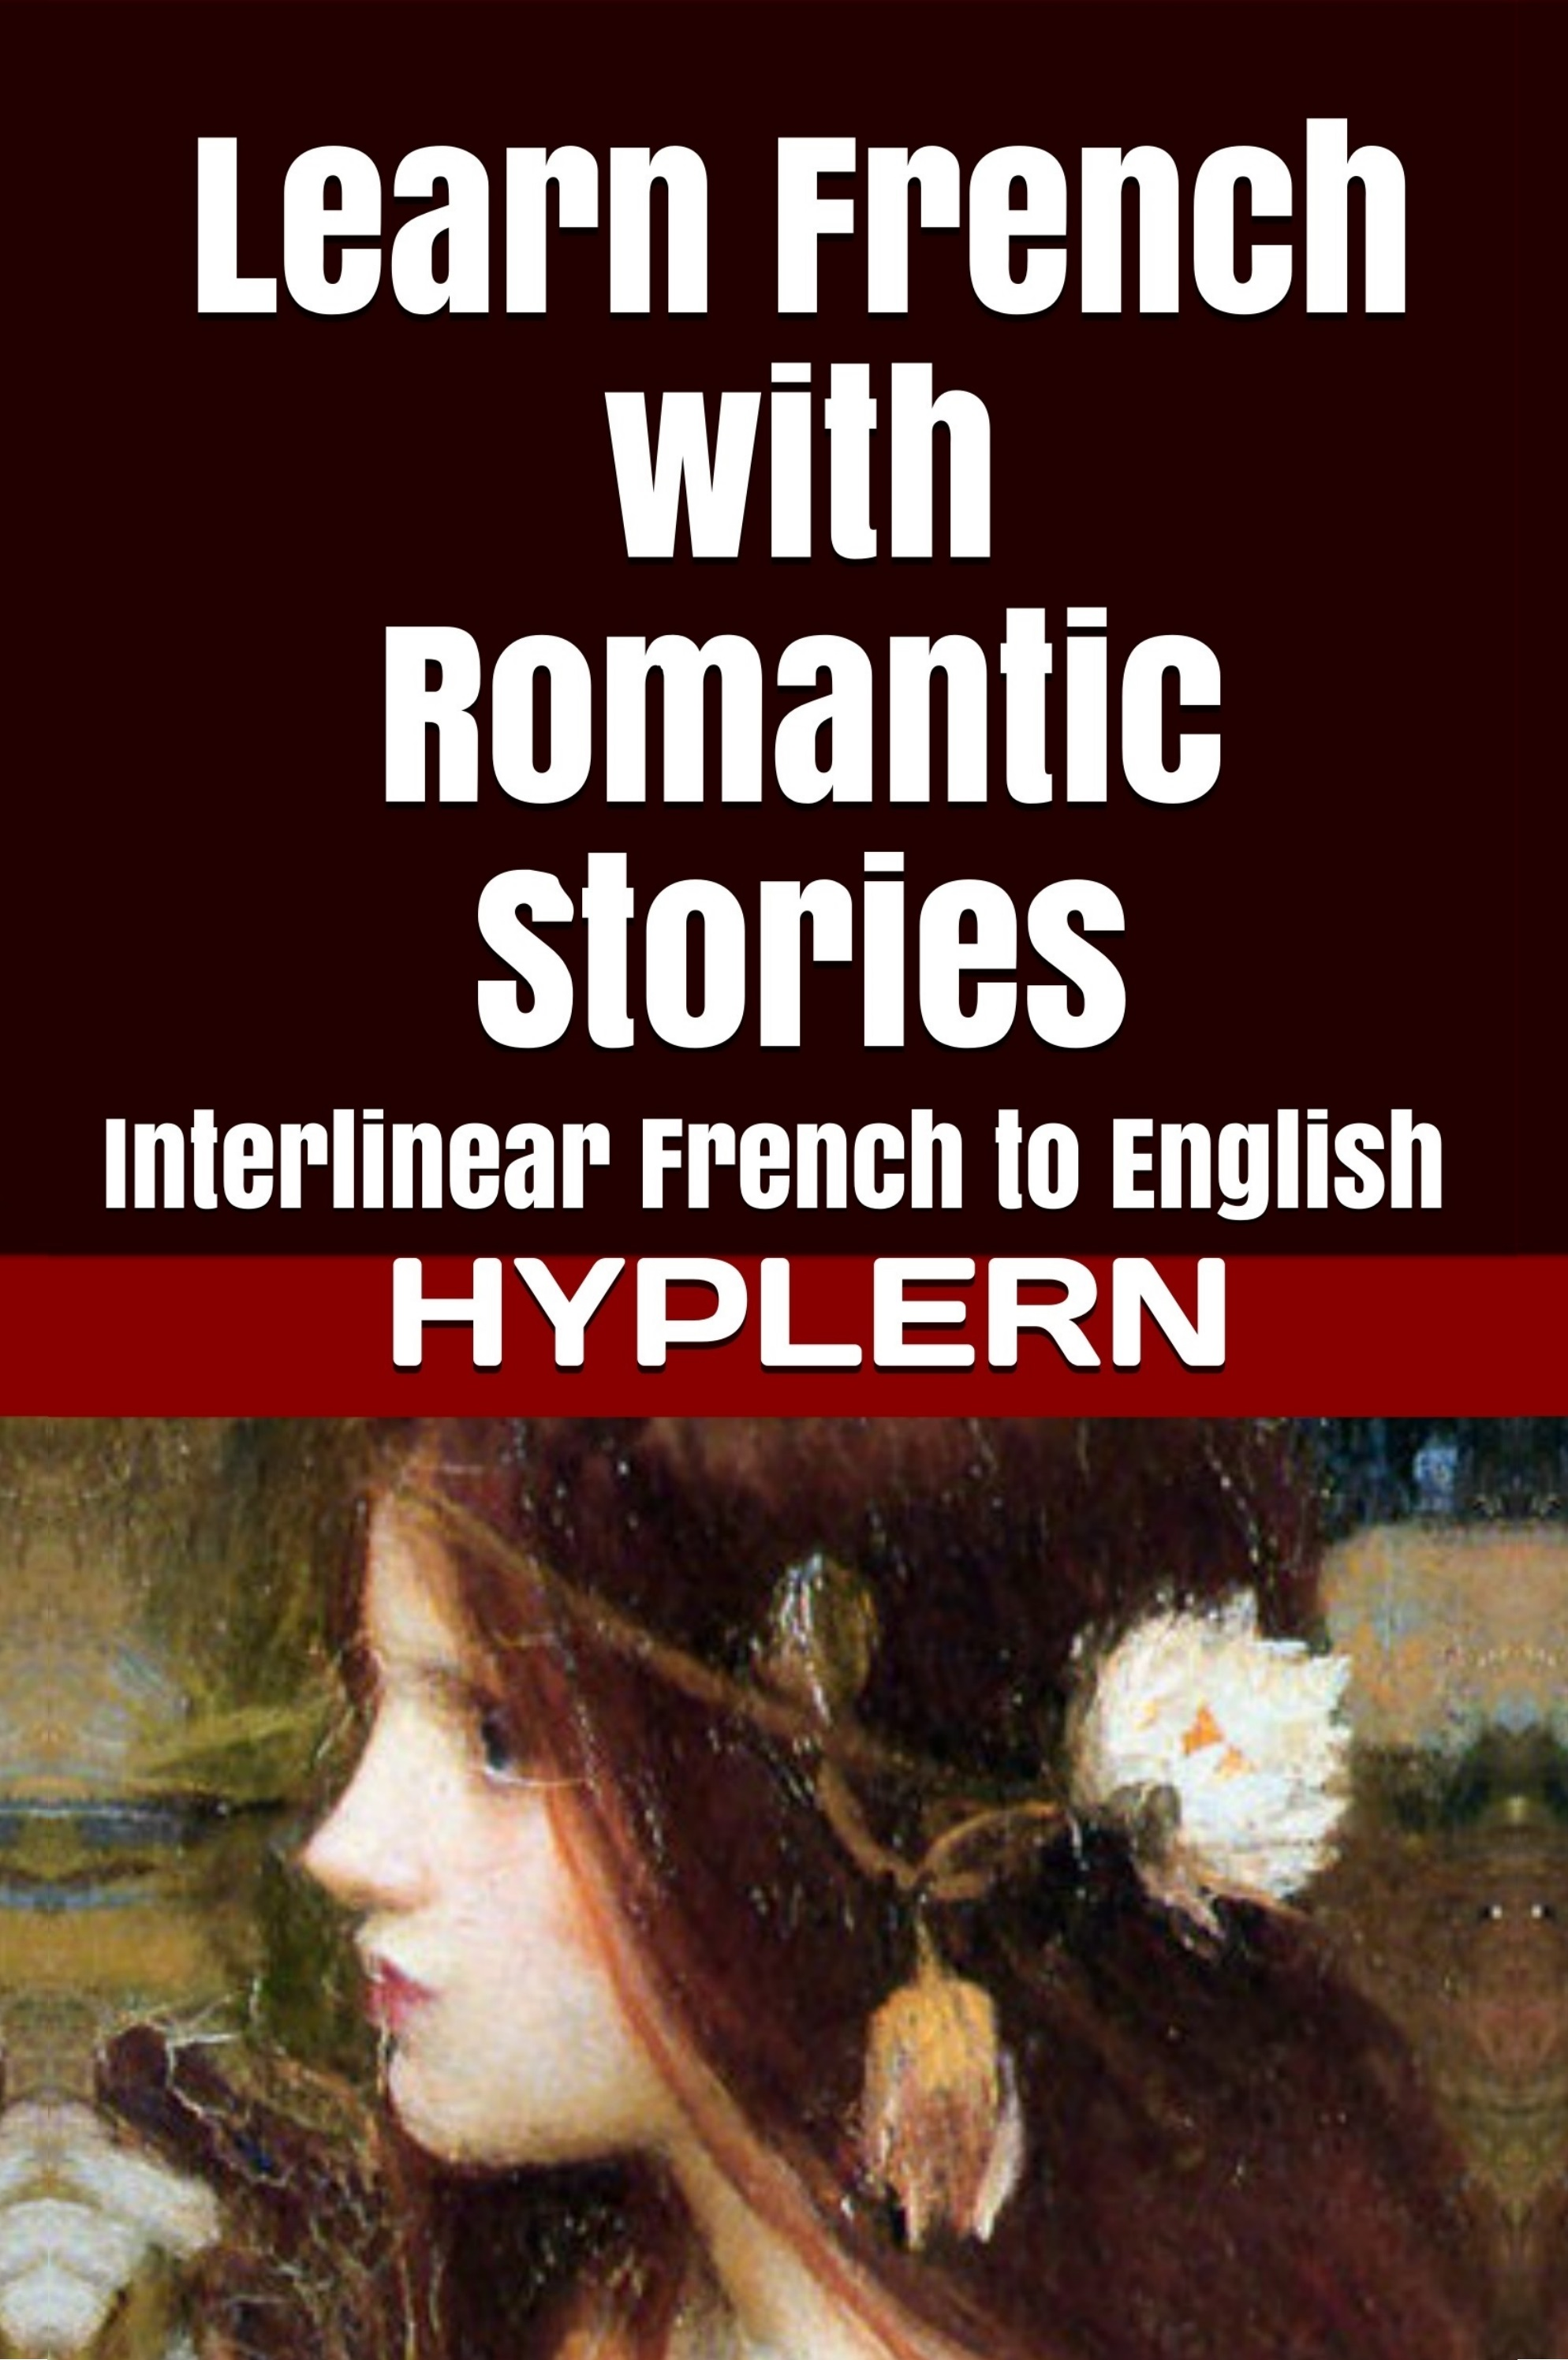 HypLern - Learn French with Romantic Stories - Interlinear French to English